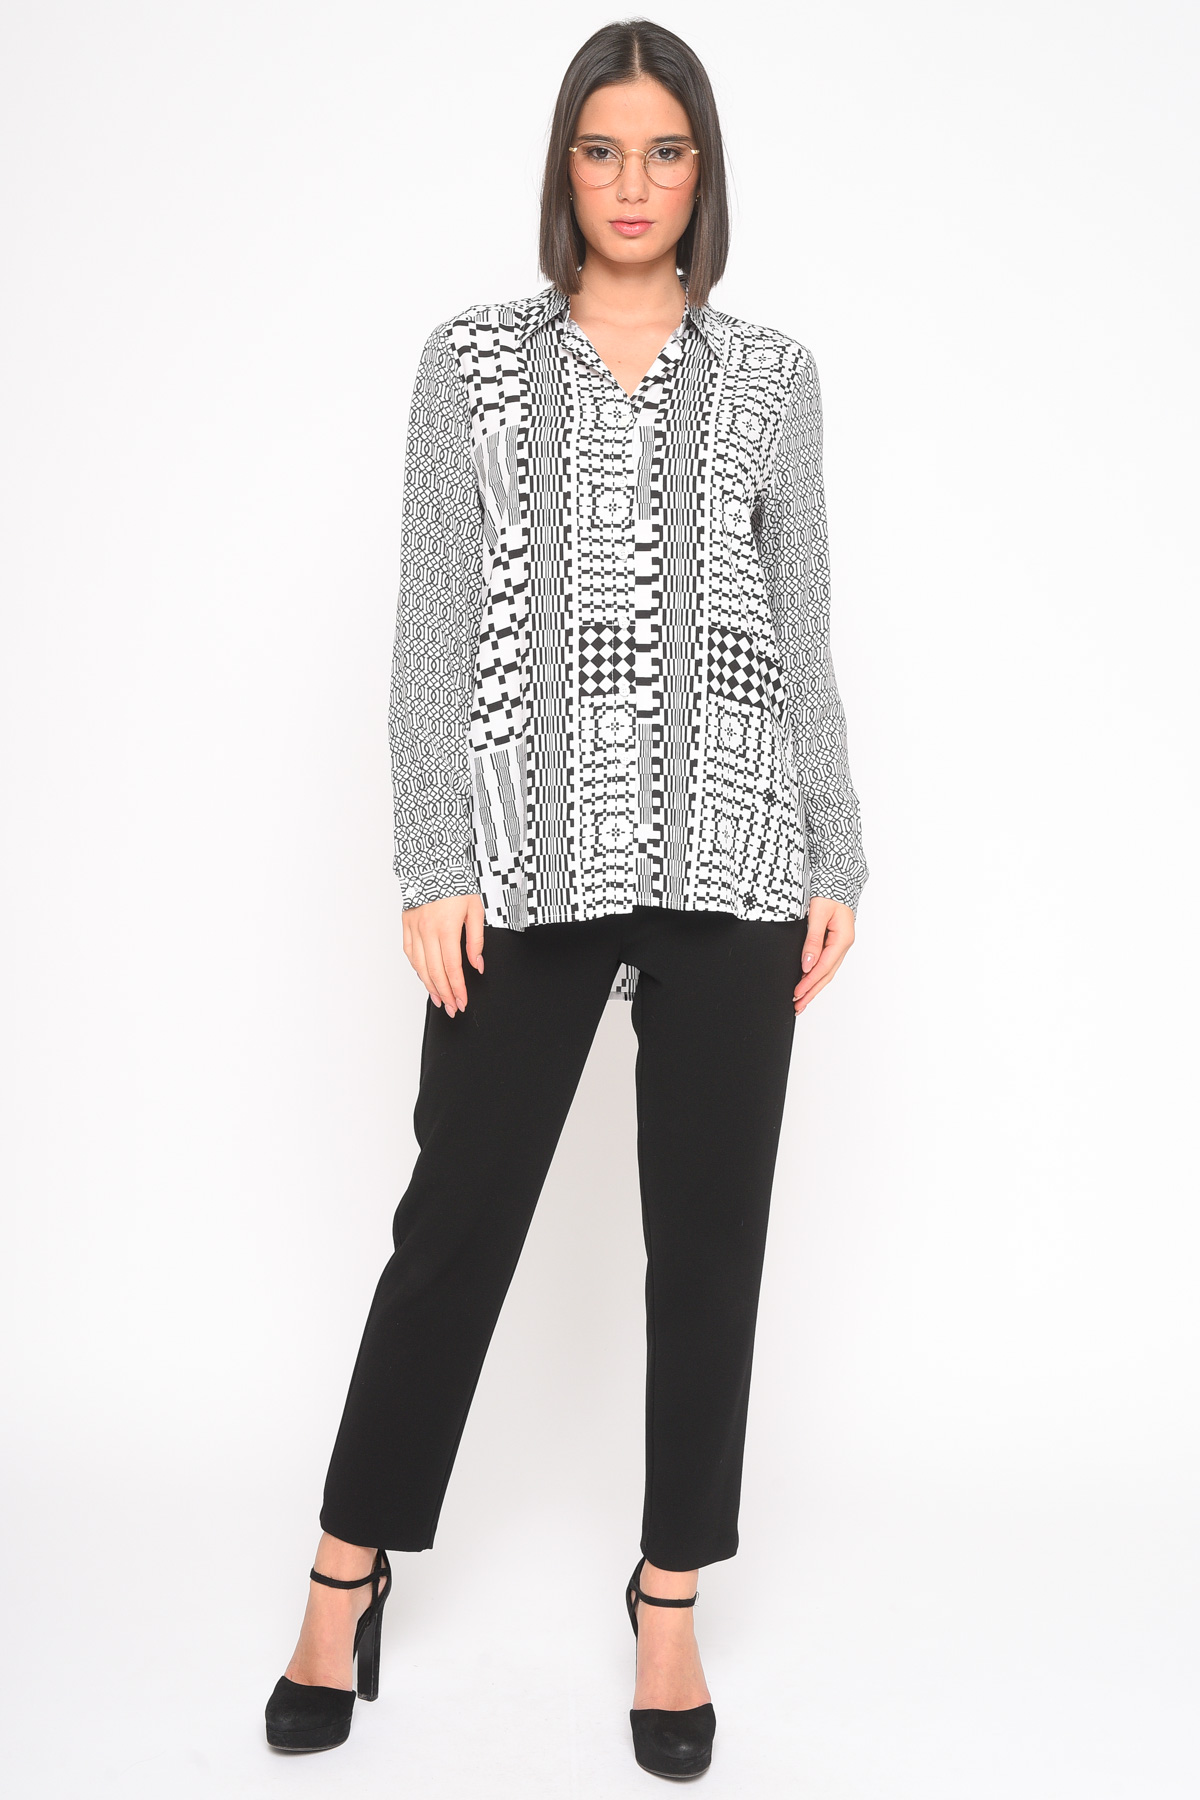 GEOMETRIC PATTERN SHIRT IN VISCOSE  for woman - ONLY - Paquito Pronto Moda Shop Online